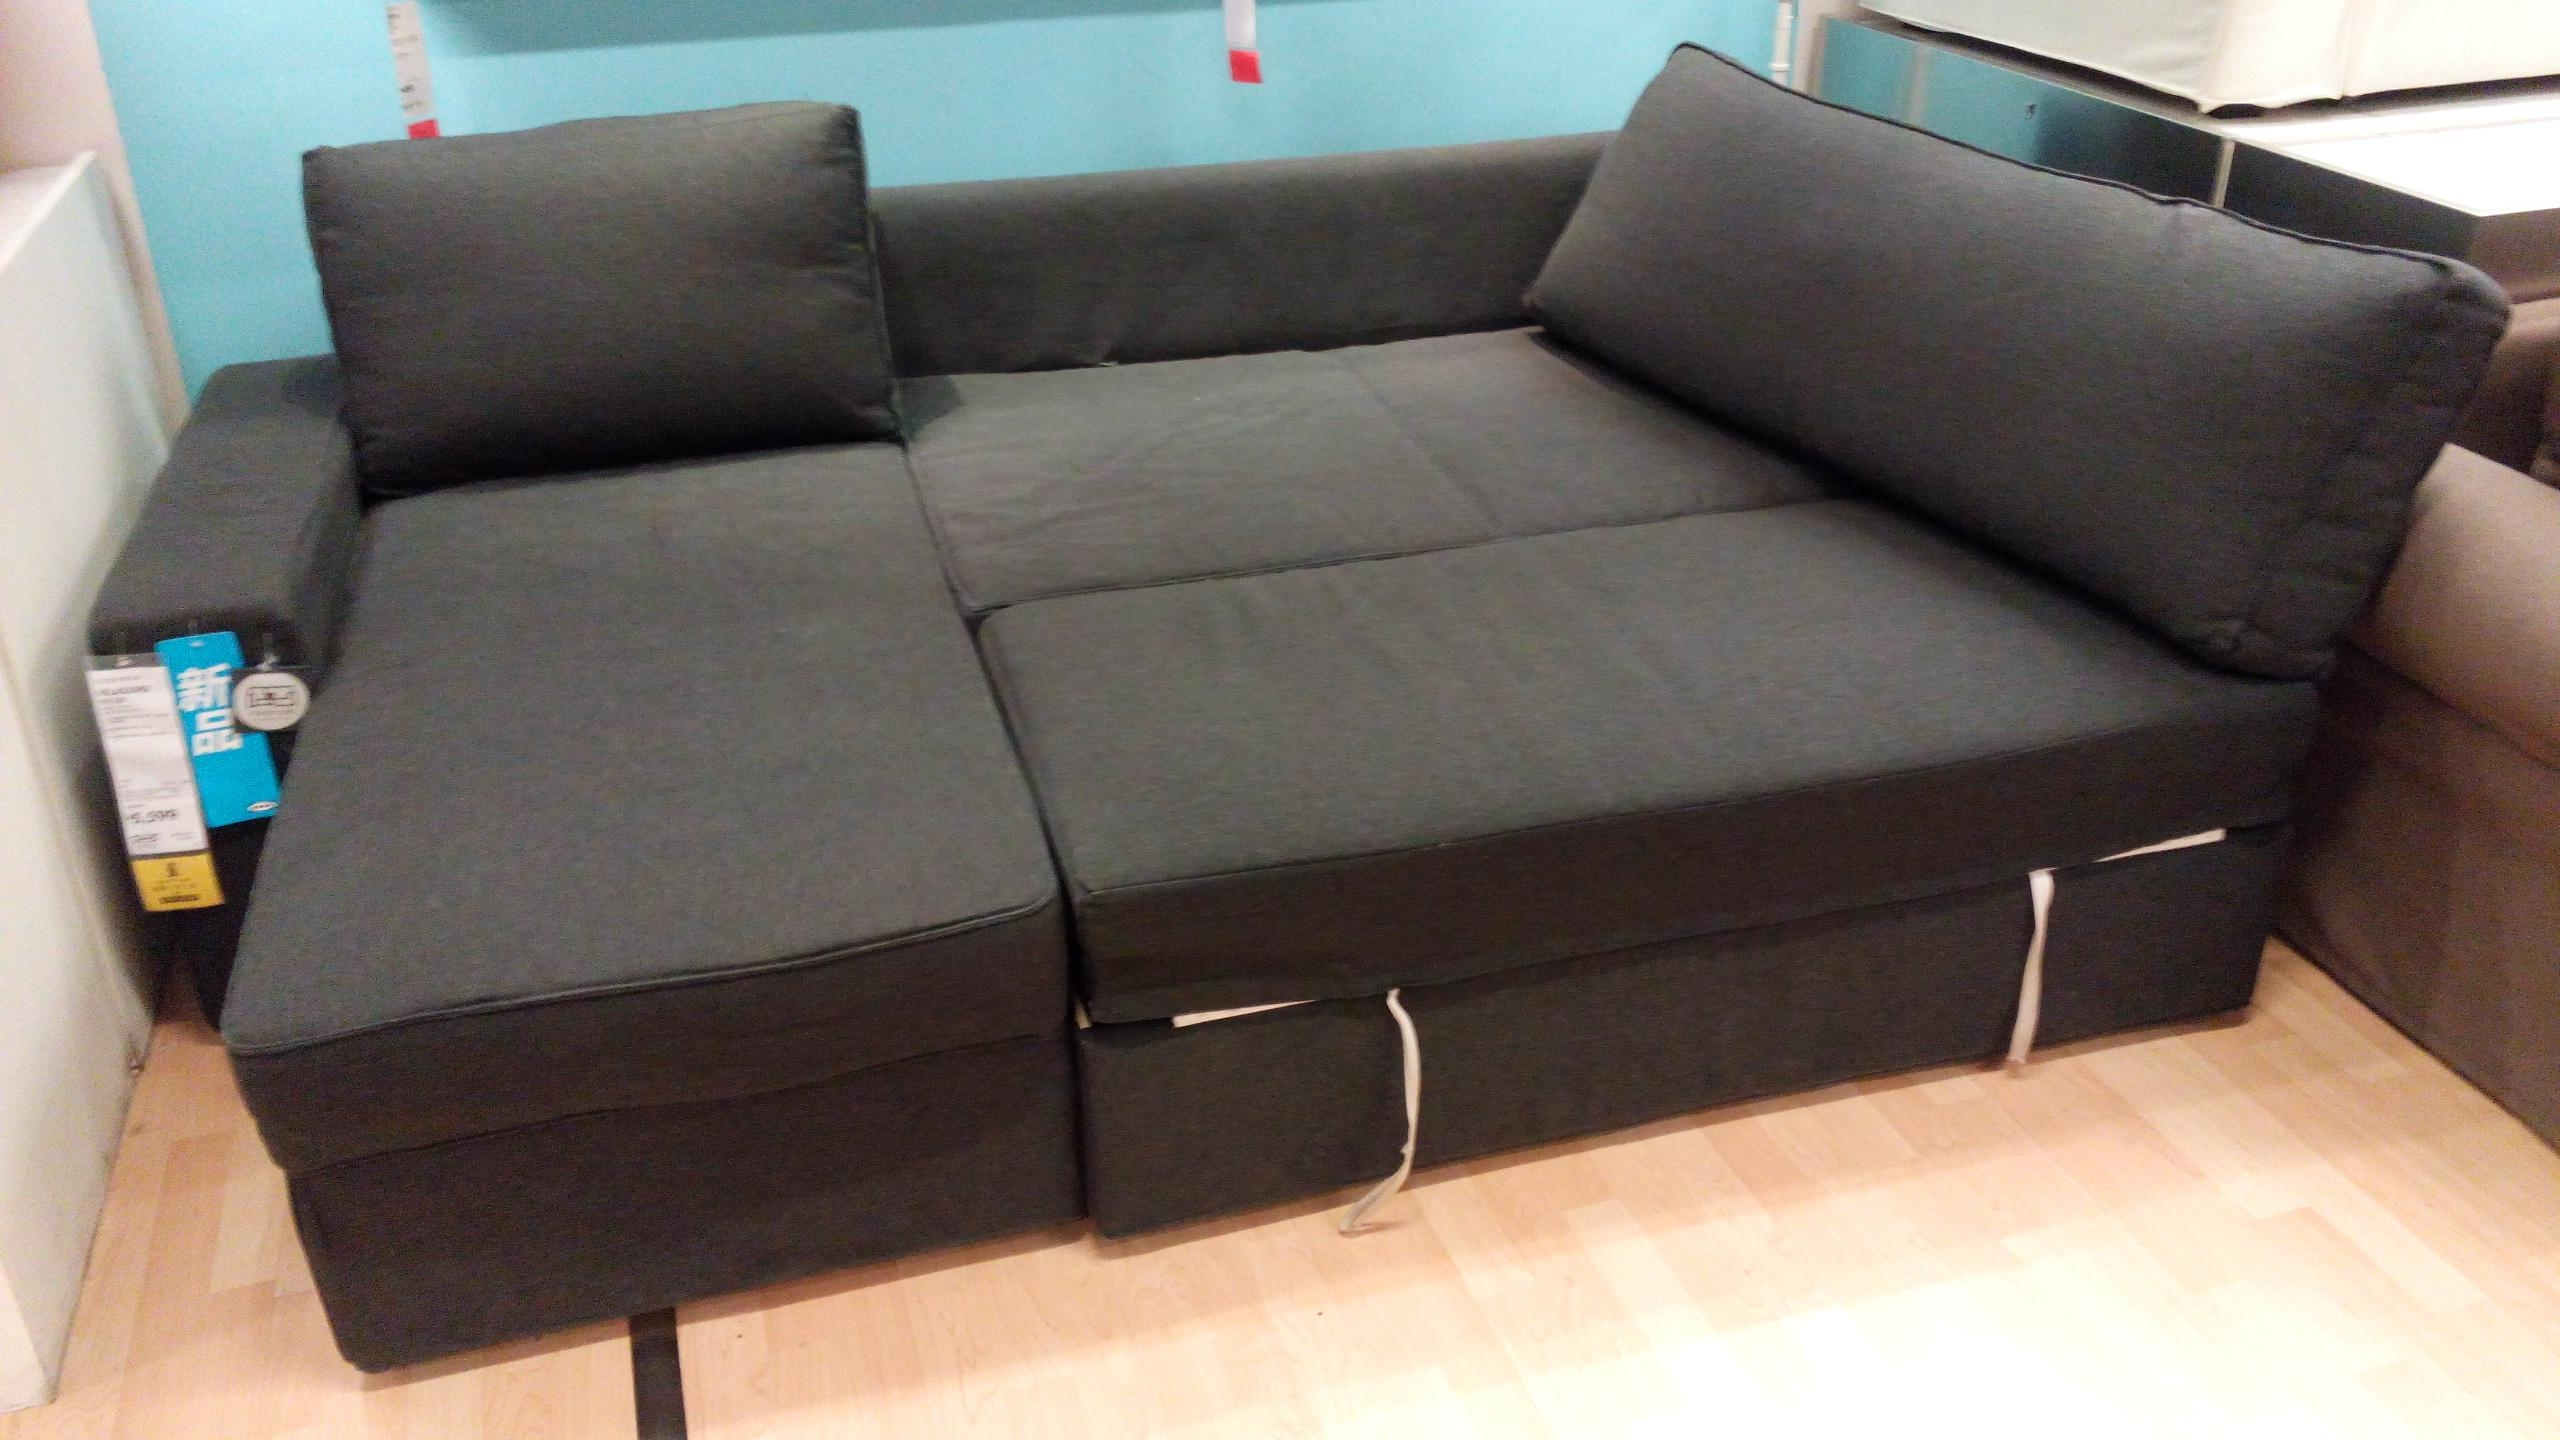 Ikea Vilasund And Backabro Review – Return Of The Sofa Bed Clones! For Chaise Longue Sofa Beds (Image 11 of 20)